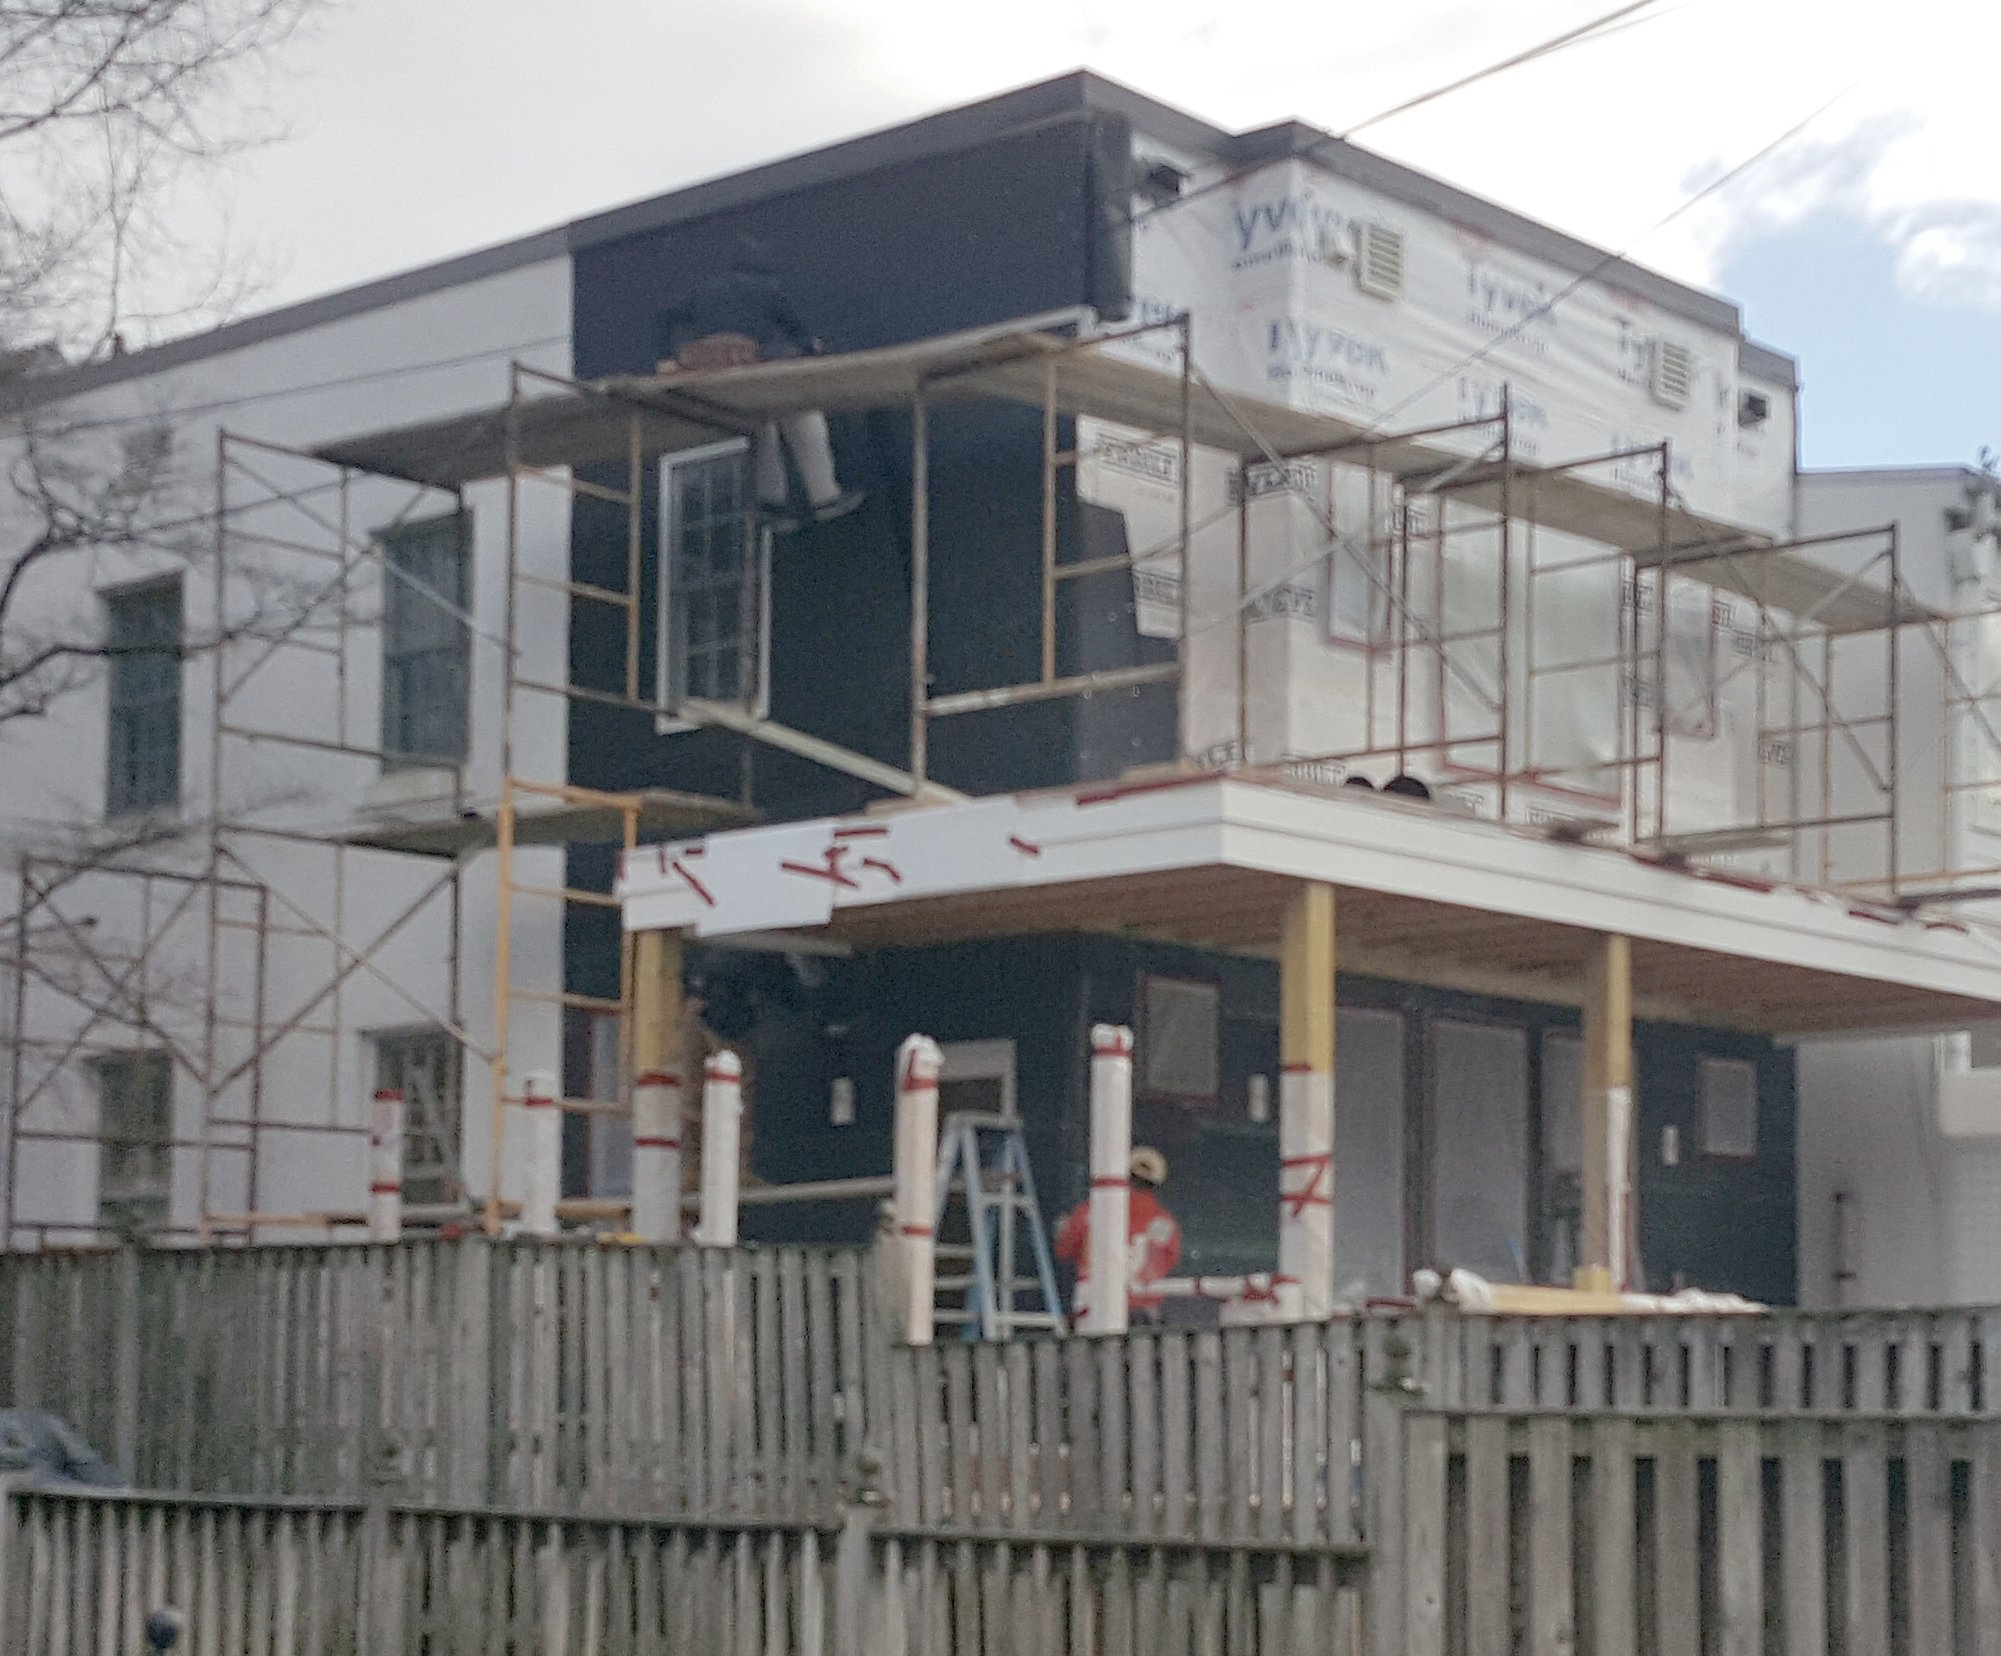 Plaster And Stucco Jobs In Progress February 2018